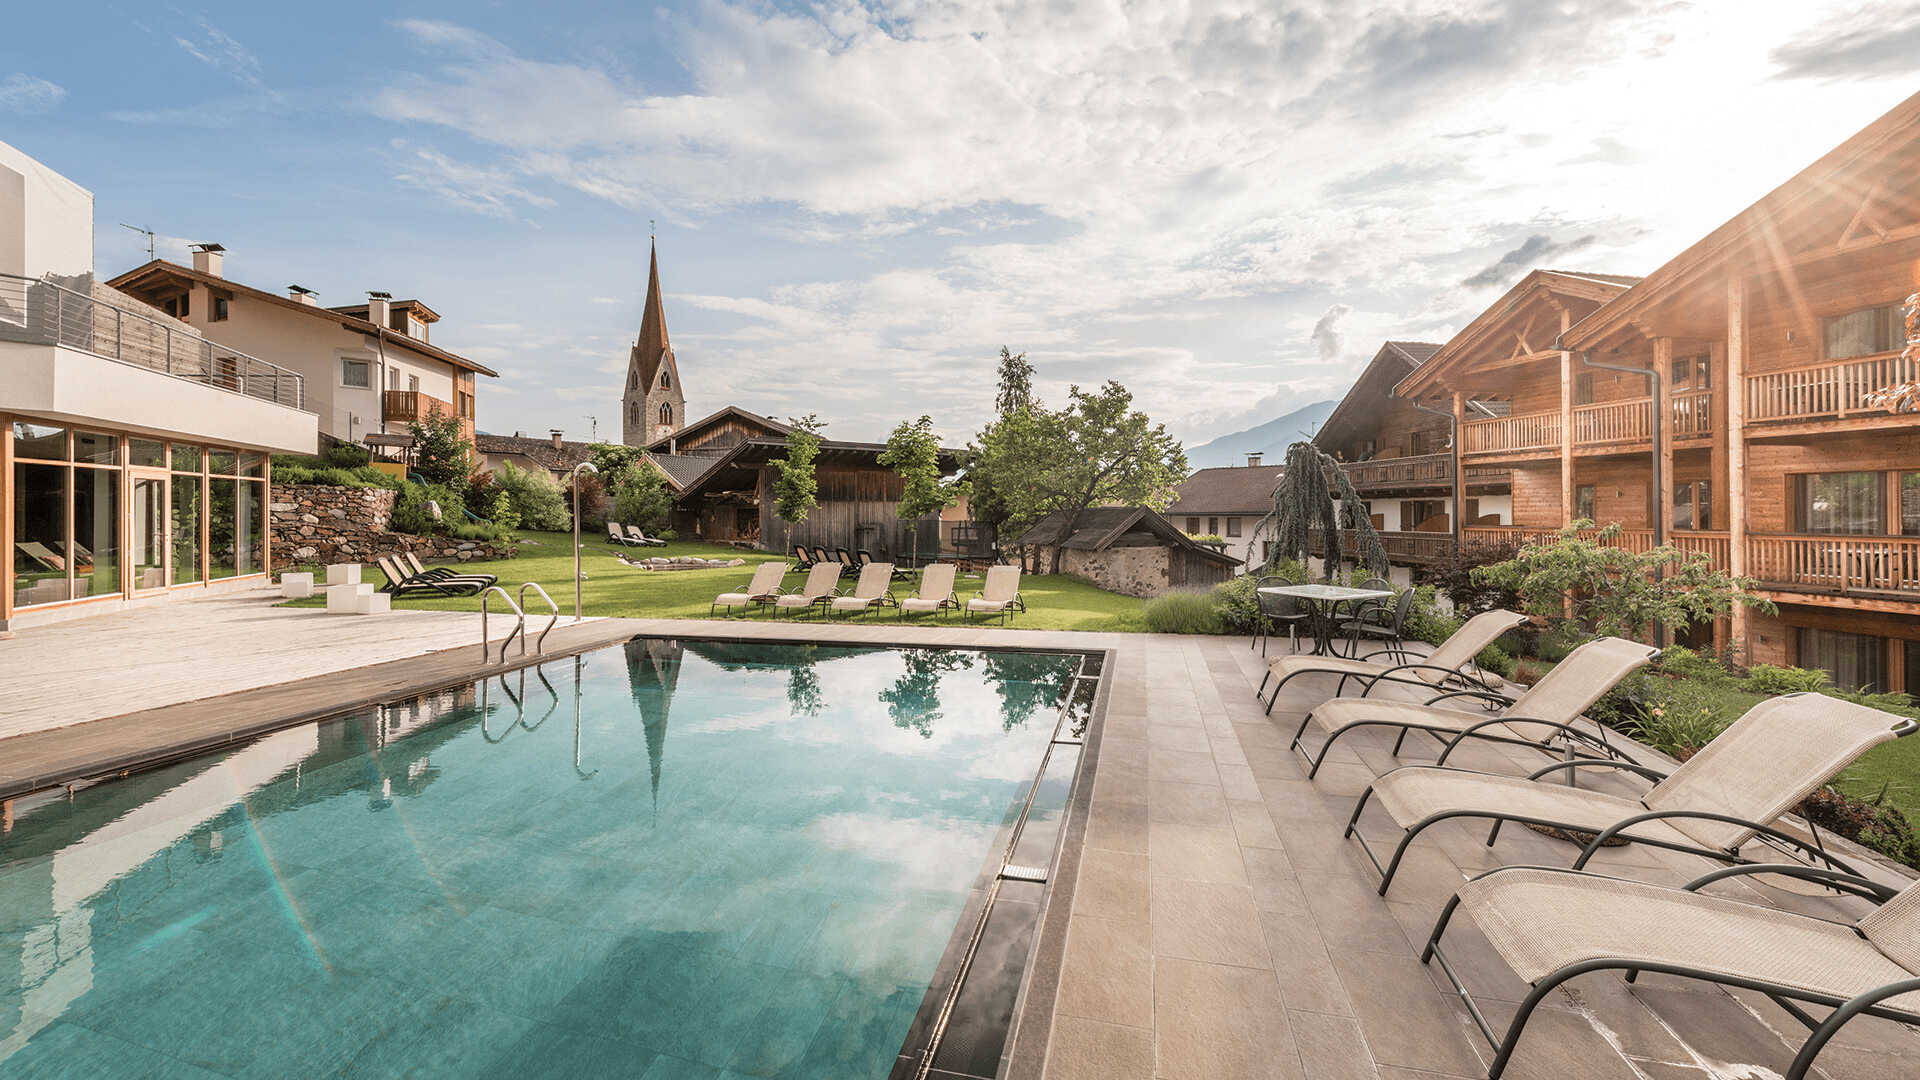 Der Gasserhof Tradition & Lifestyle Hotel